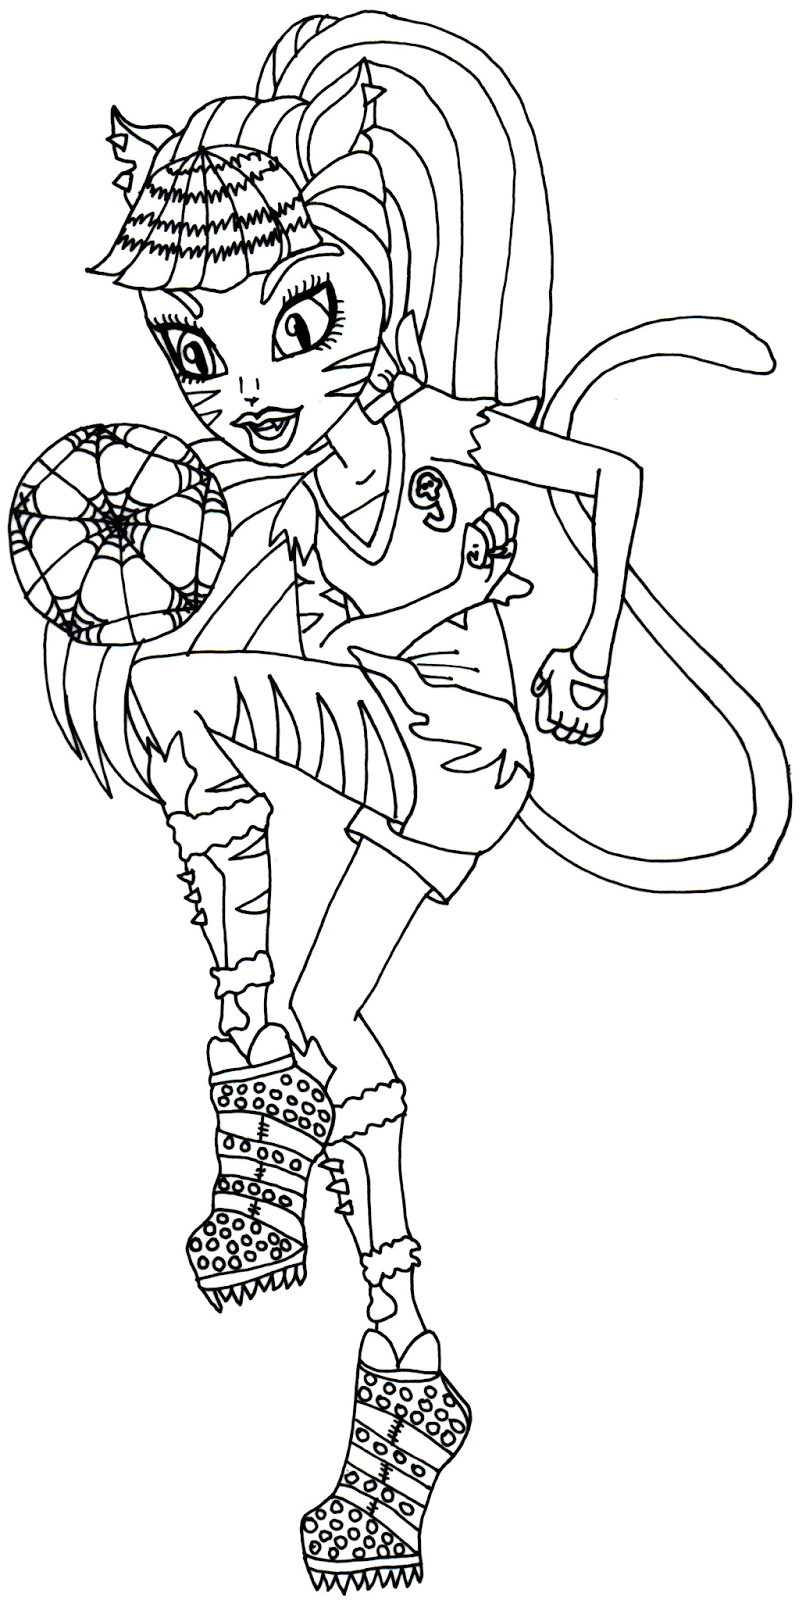 Free Printable Monster High Coloring Pages March 2014 High Coloring Pages Printables